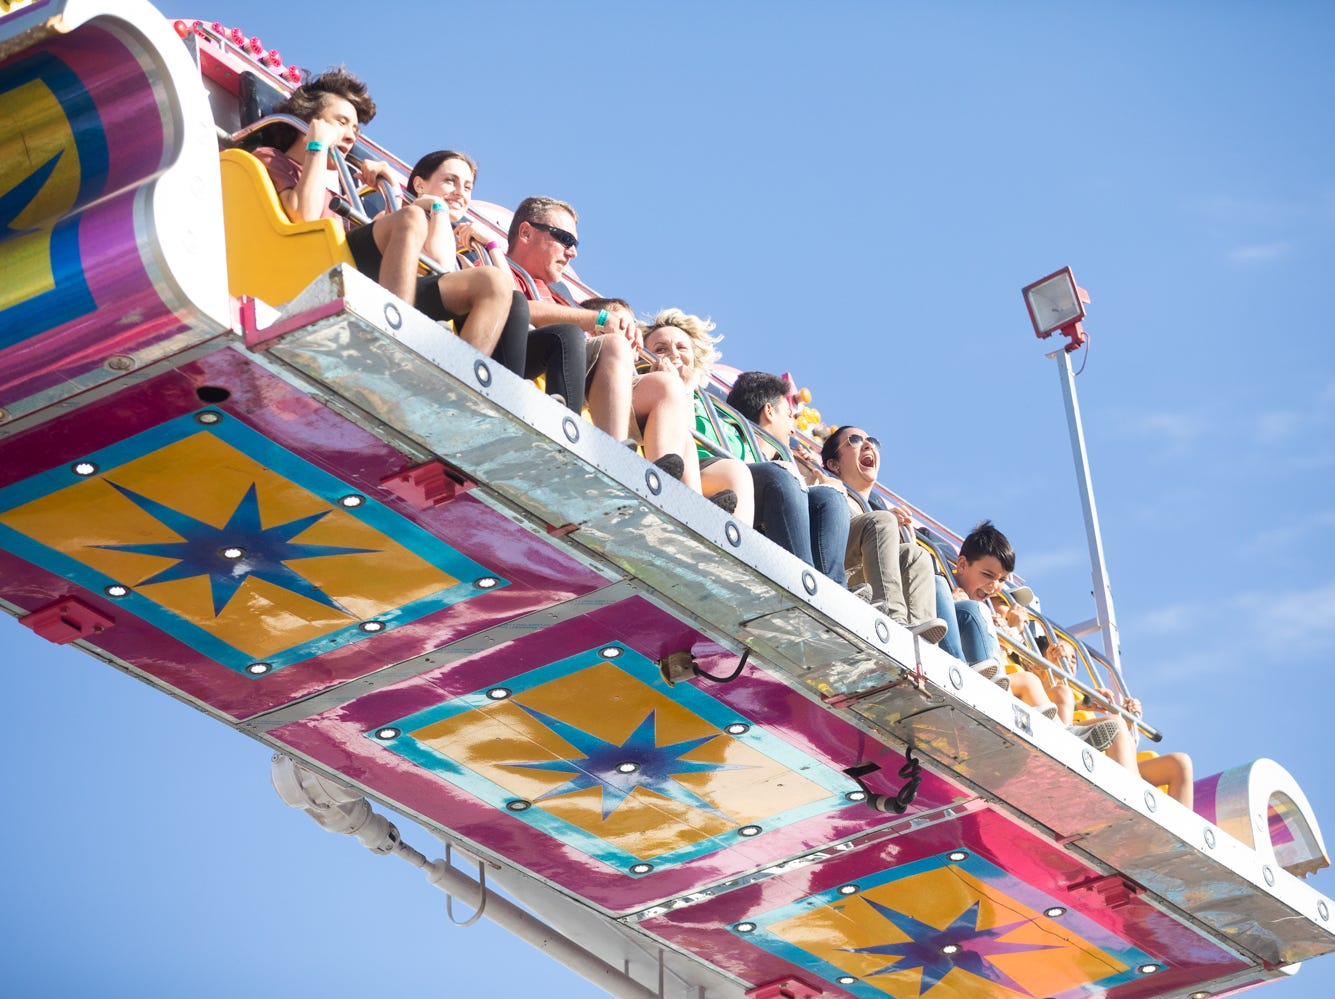 Everyone enjoyed the rides at the Chandler Ostrich Festival on Sunday, March. 10, 2019.